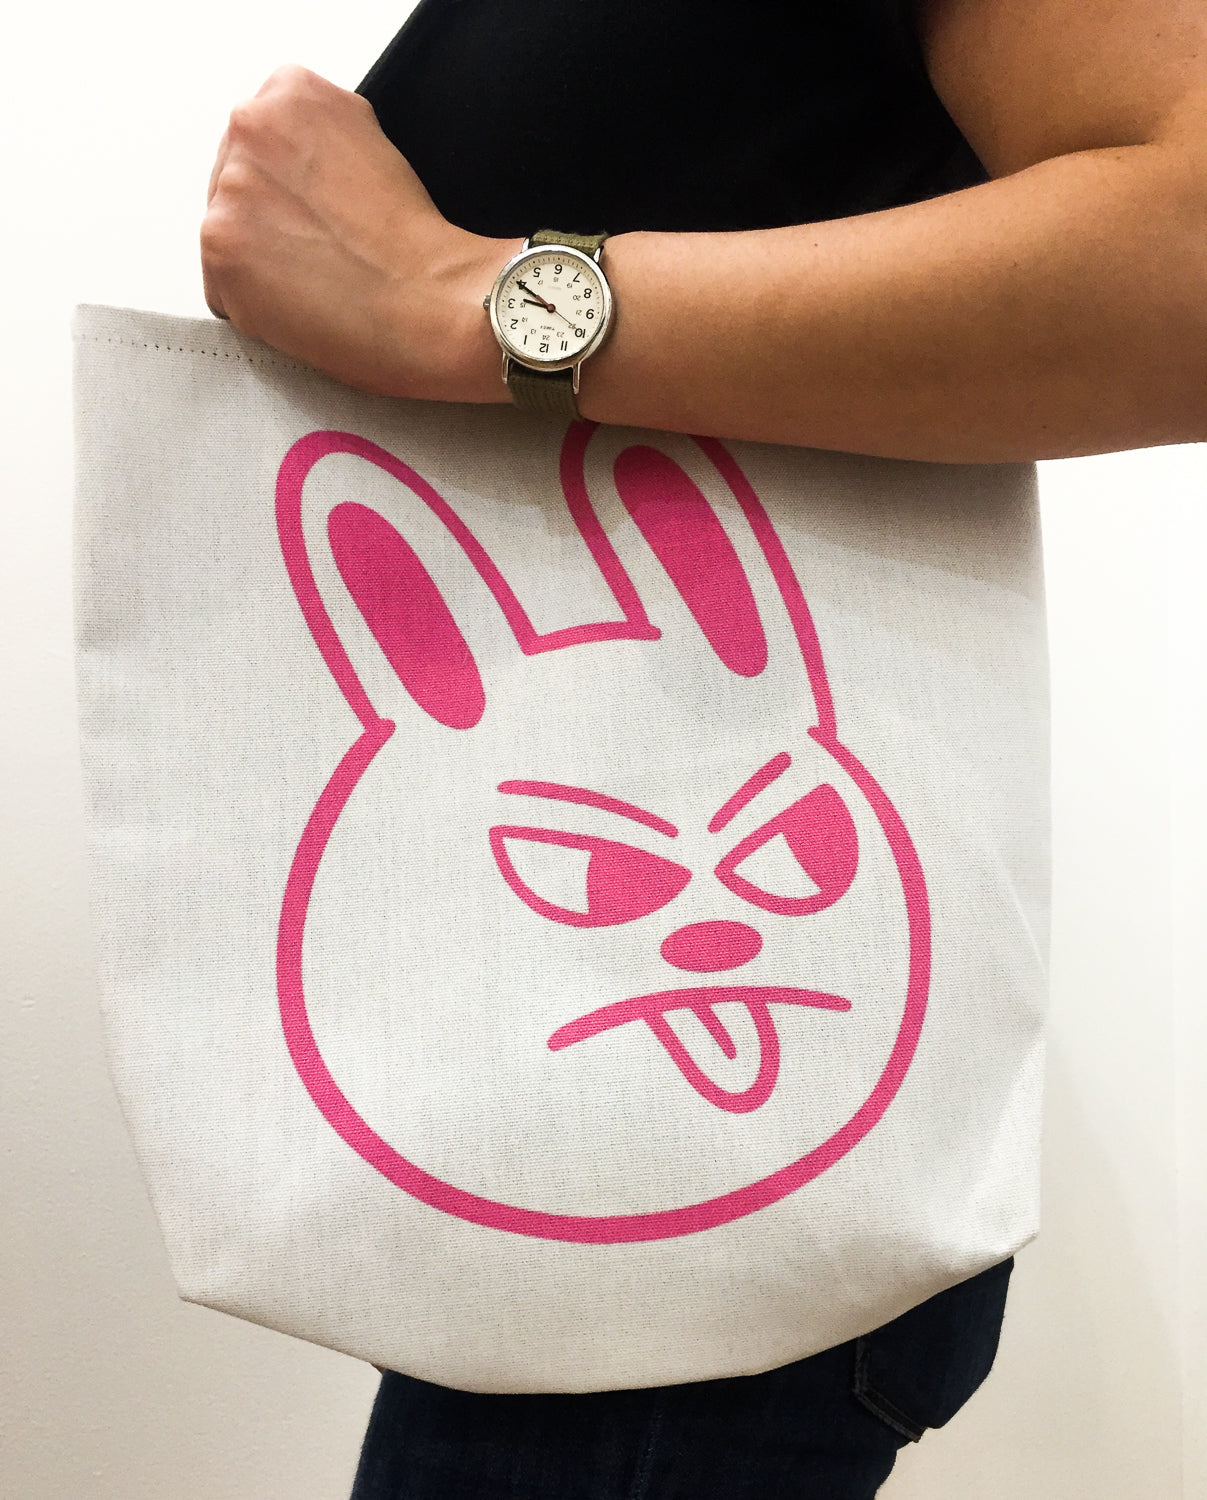 Sour Bunny Tote by Blake Jones